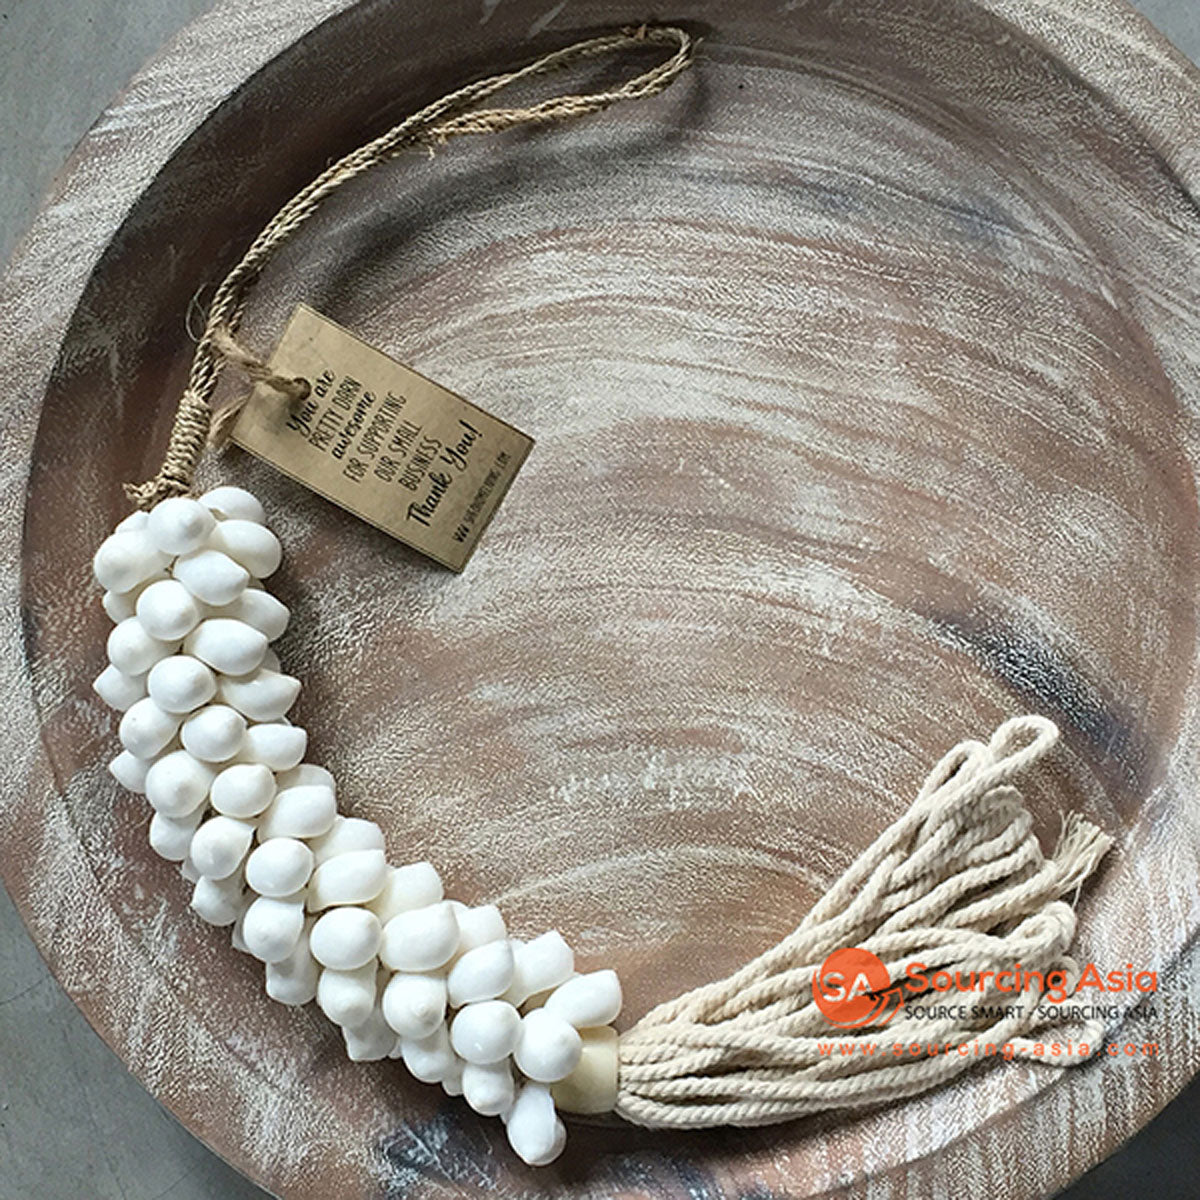 SHL047-10 NATURAL COWRIE SHELL DECORATIVE TASSEL WITH MACRAME YARN